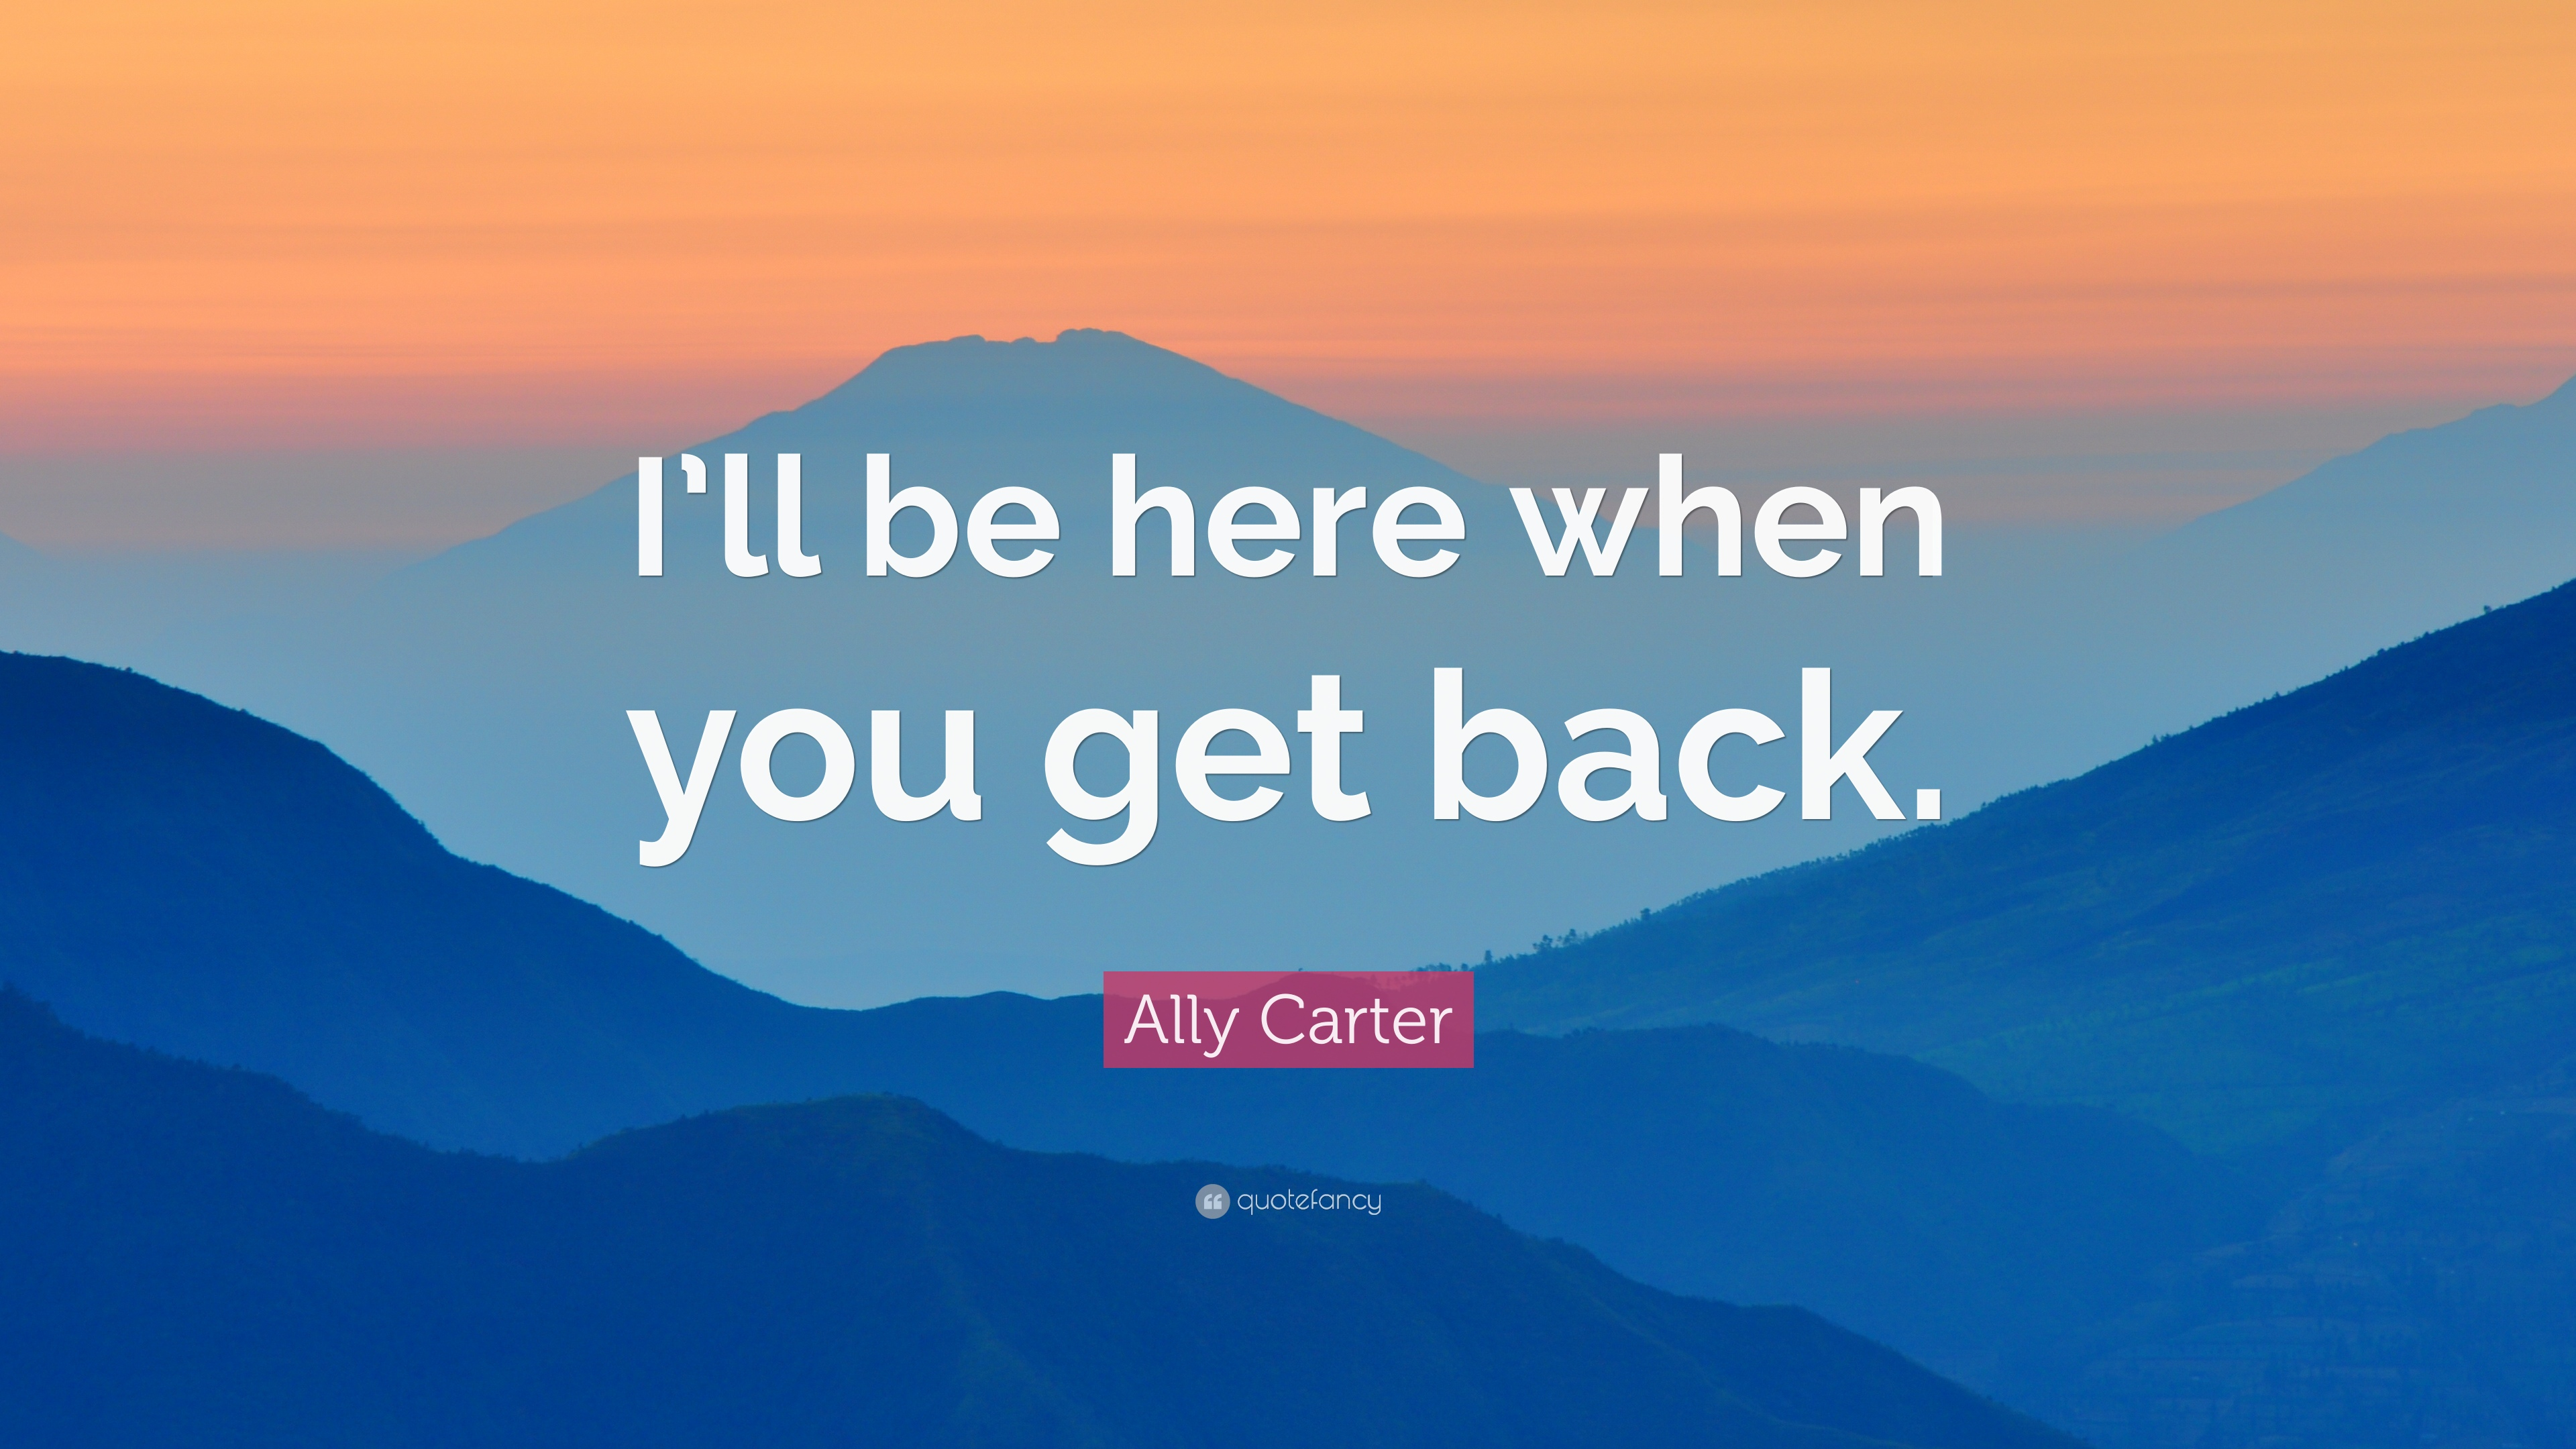 Ally Carter Quotes (100 Wallpapers)